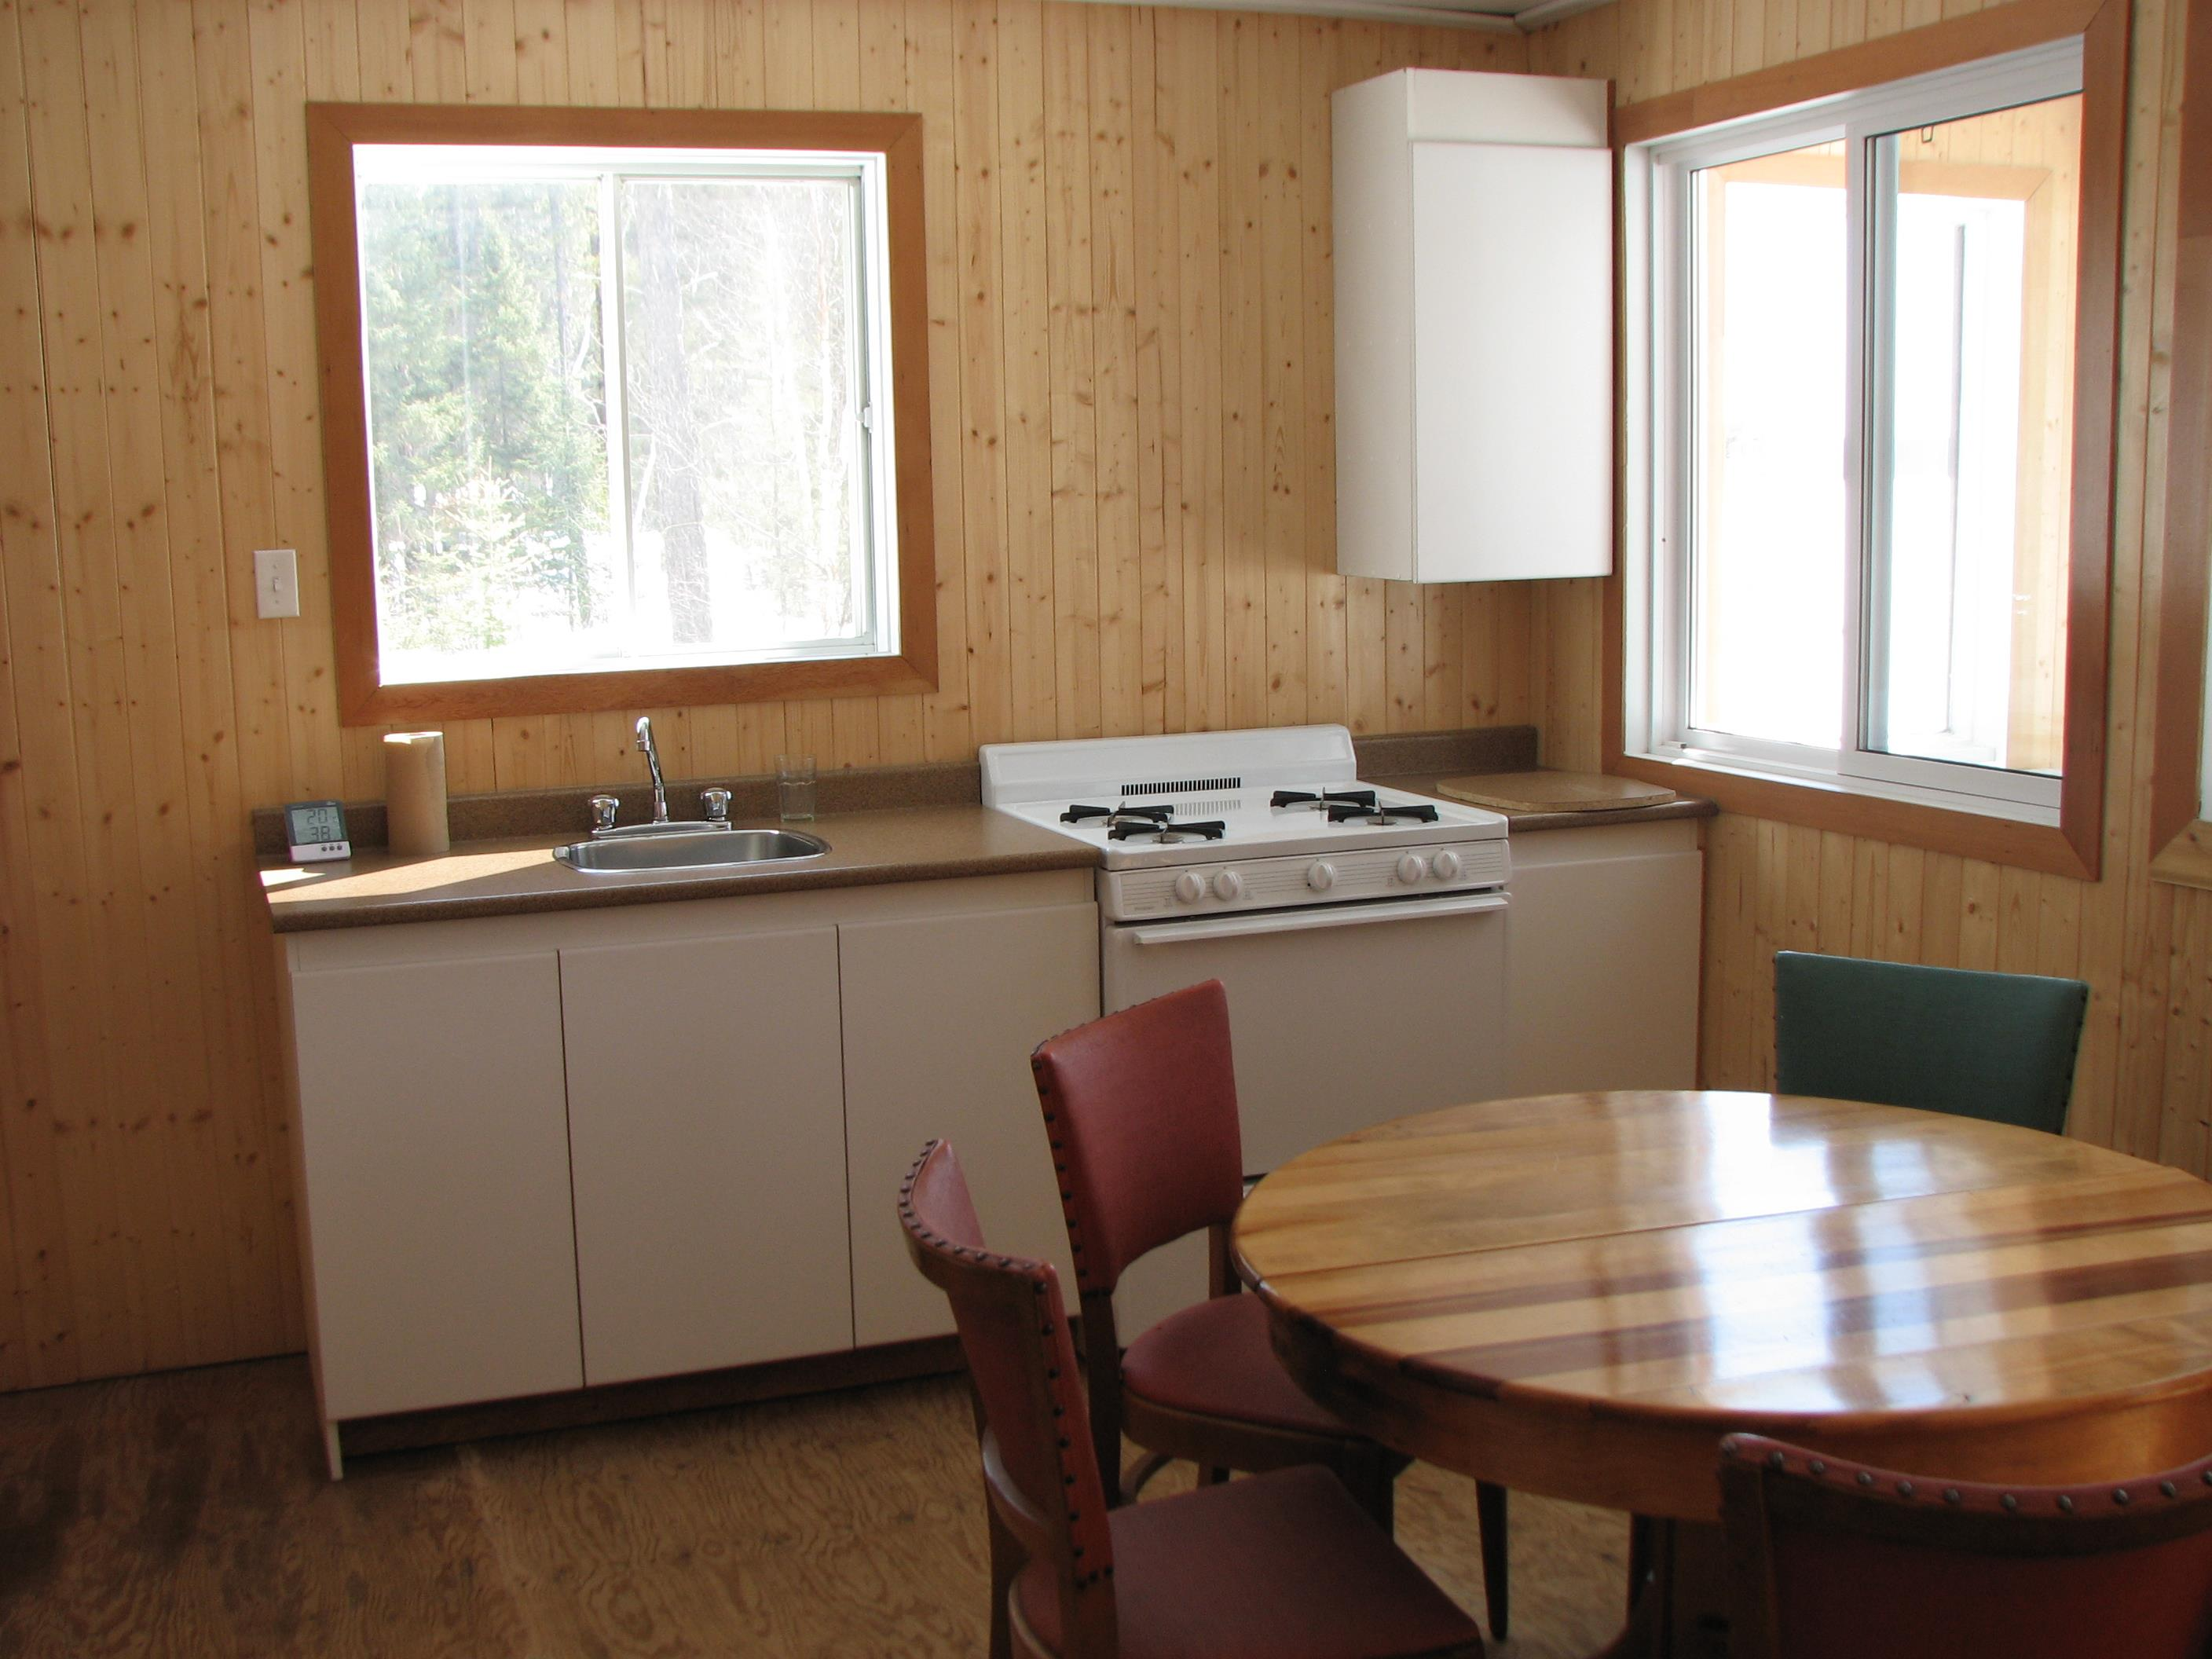 Kitchen at the chalet